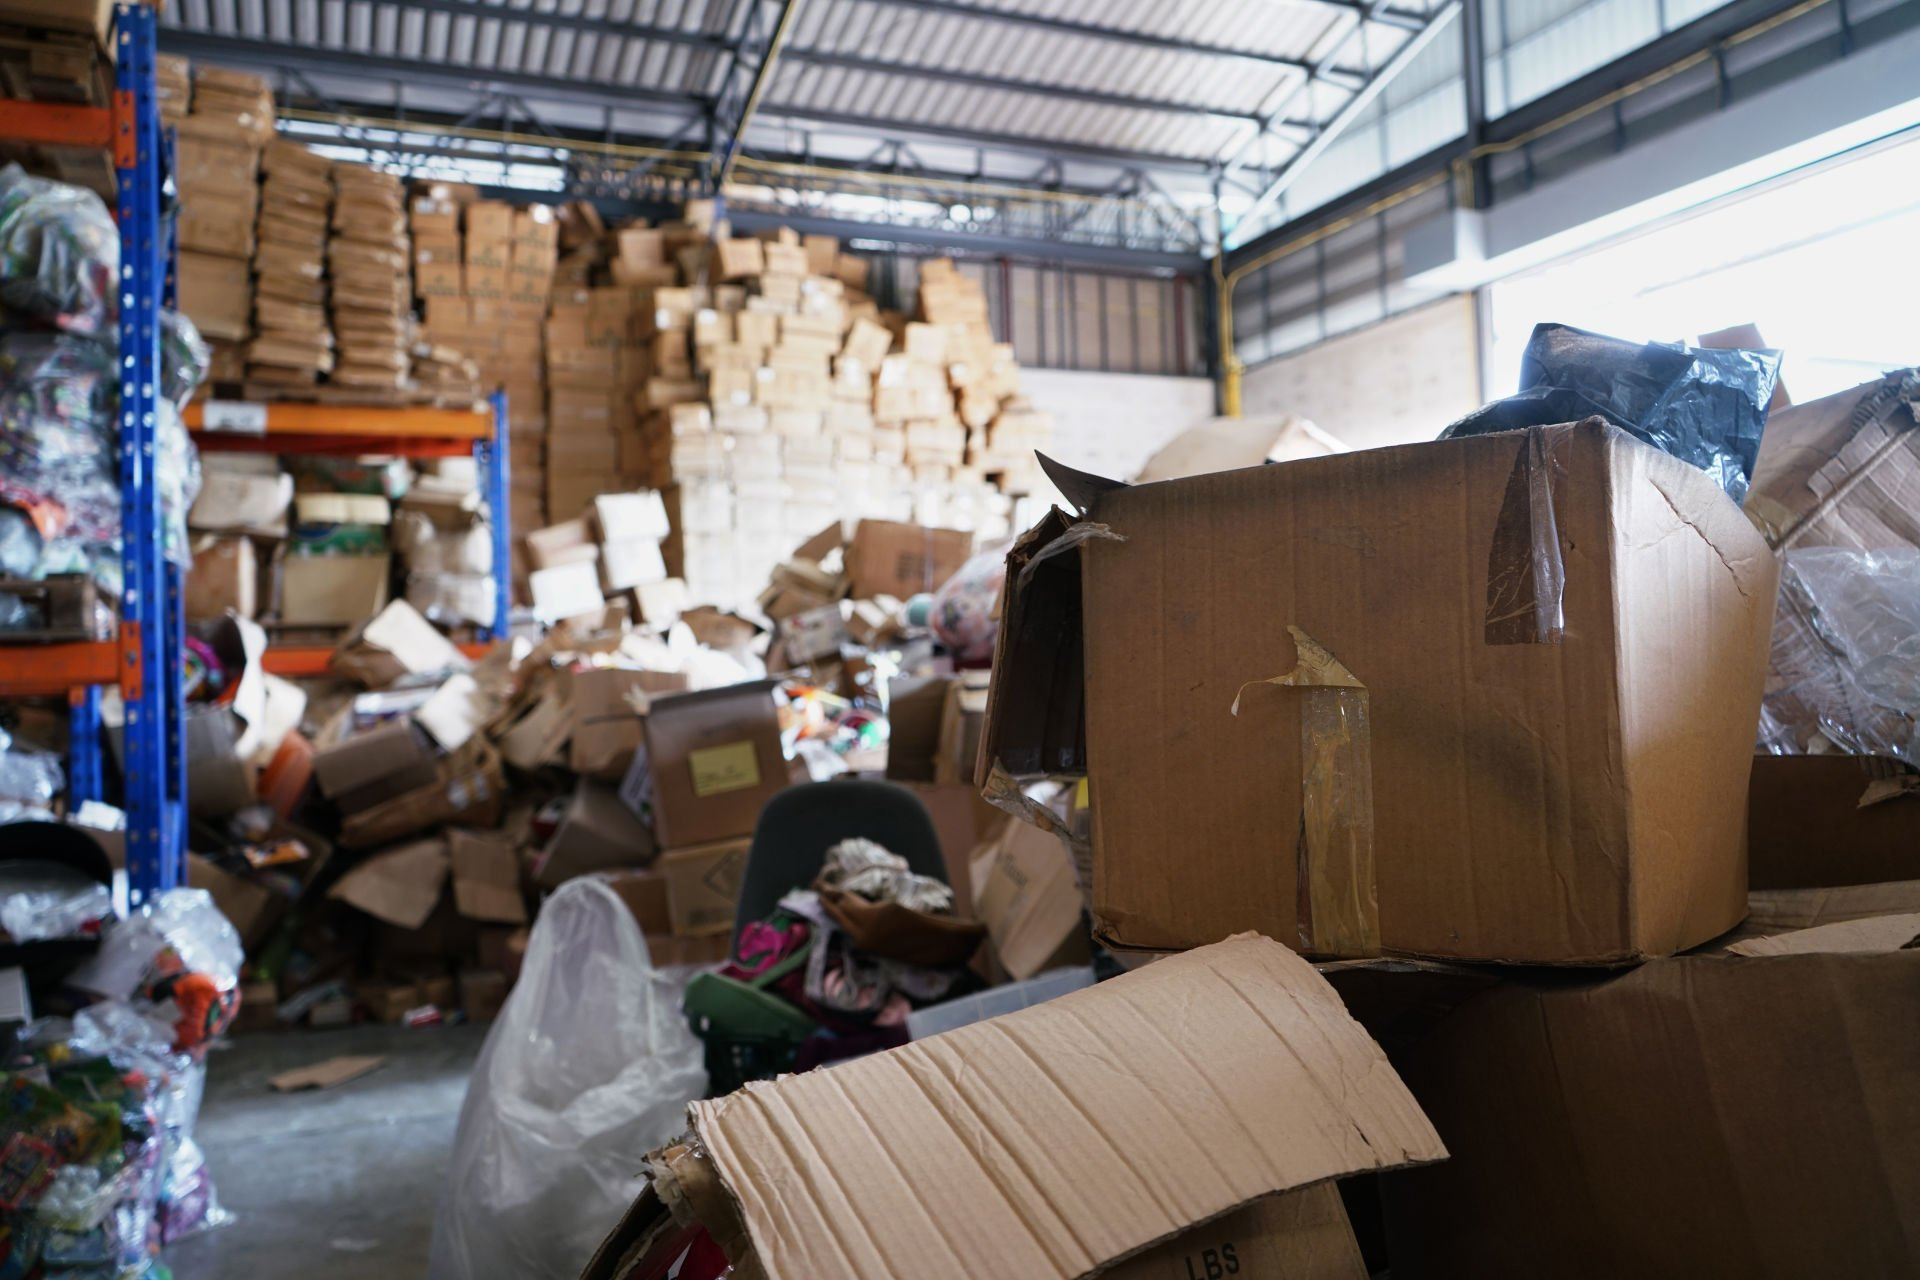 Warehouse Organization Ideas to Reduce Theft